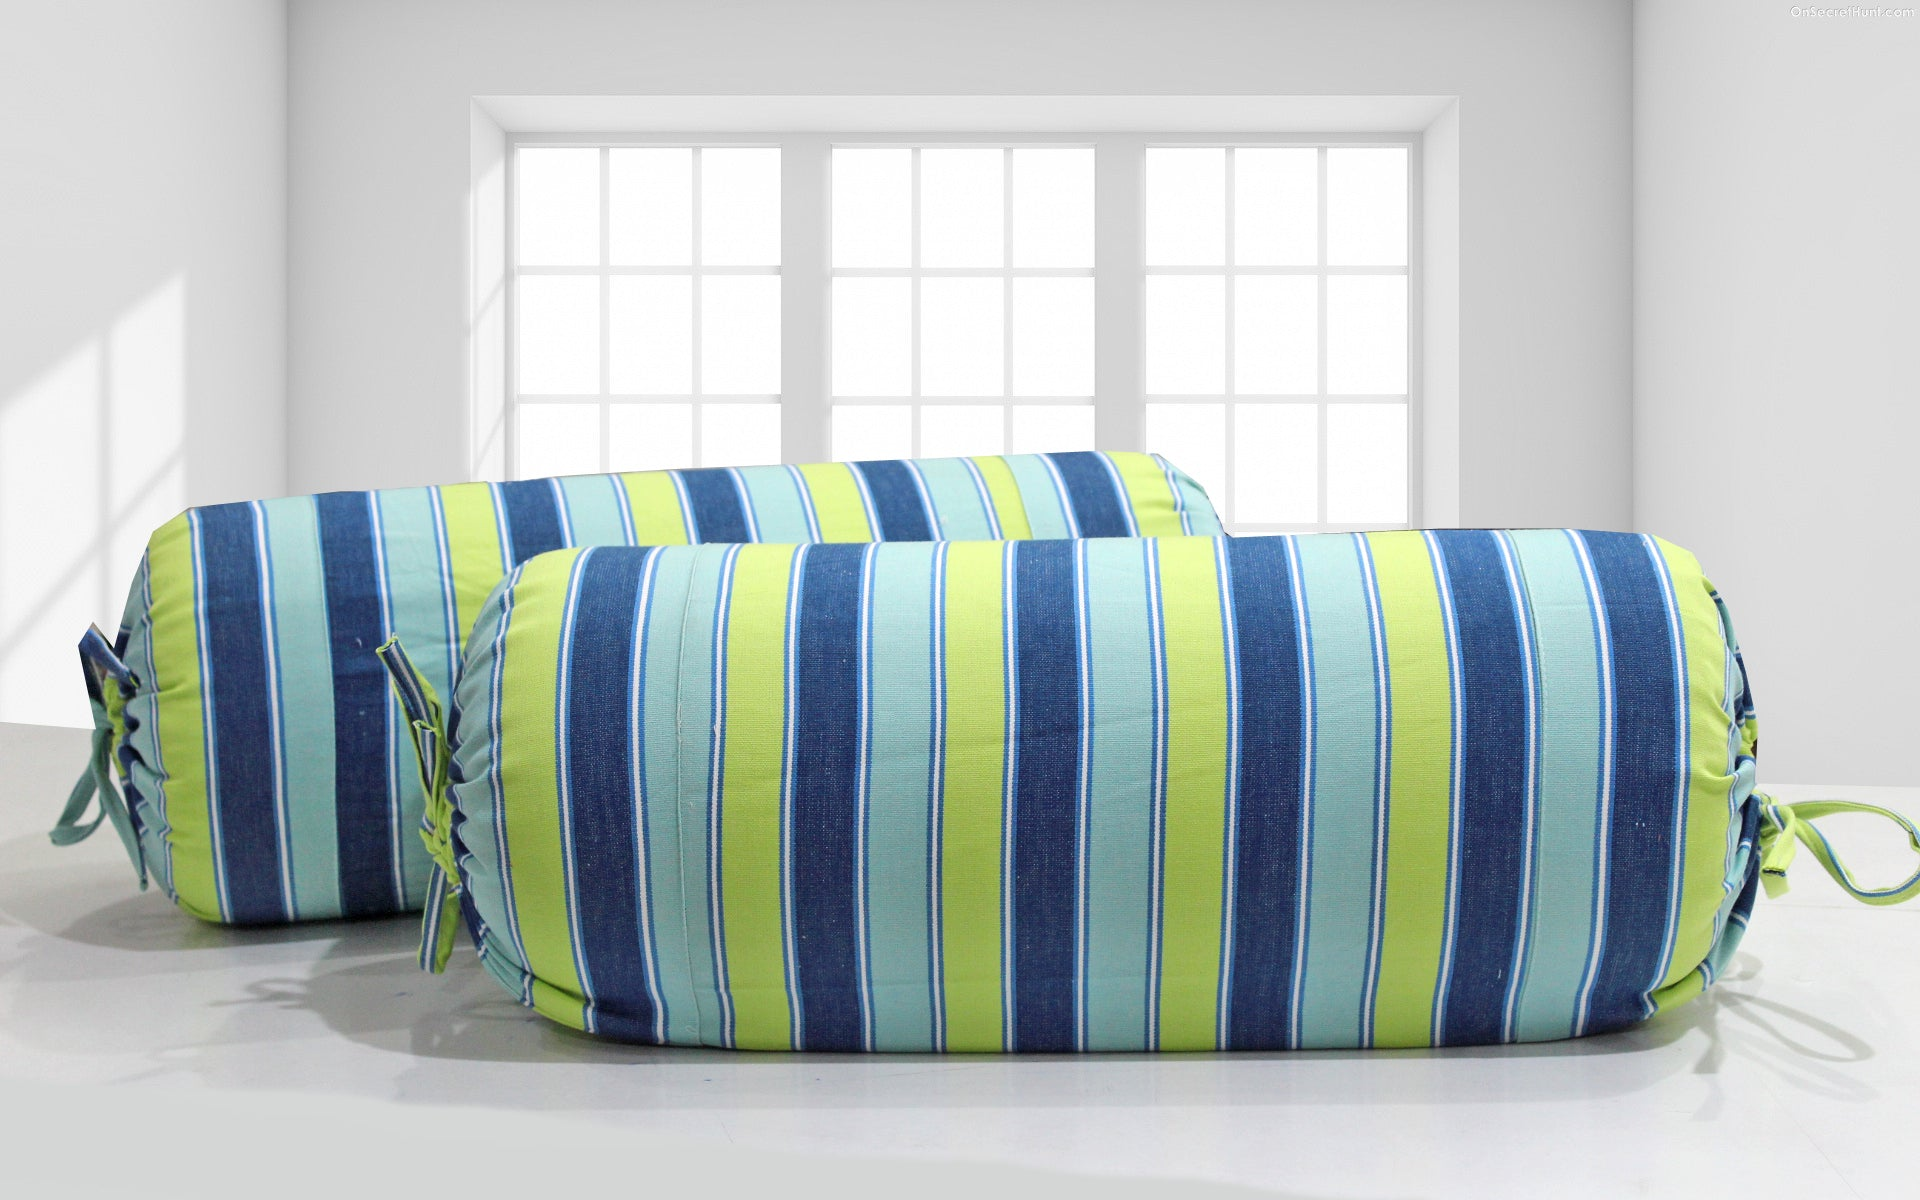 AURAVE Blue & Green Stripes Woven Cotton Bolster Cover